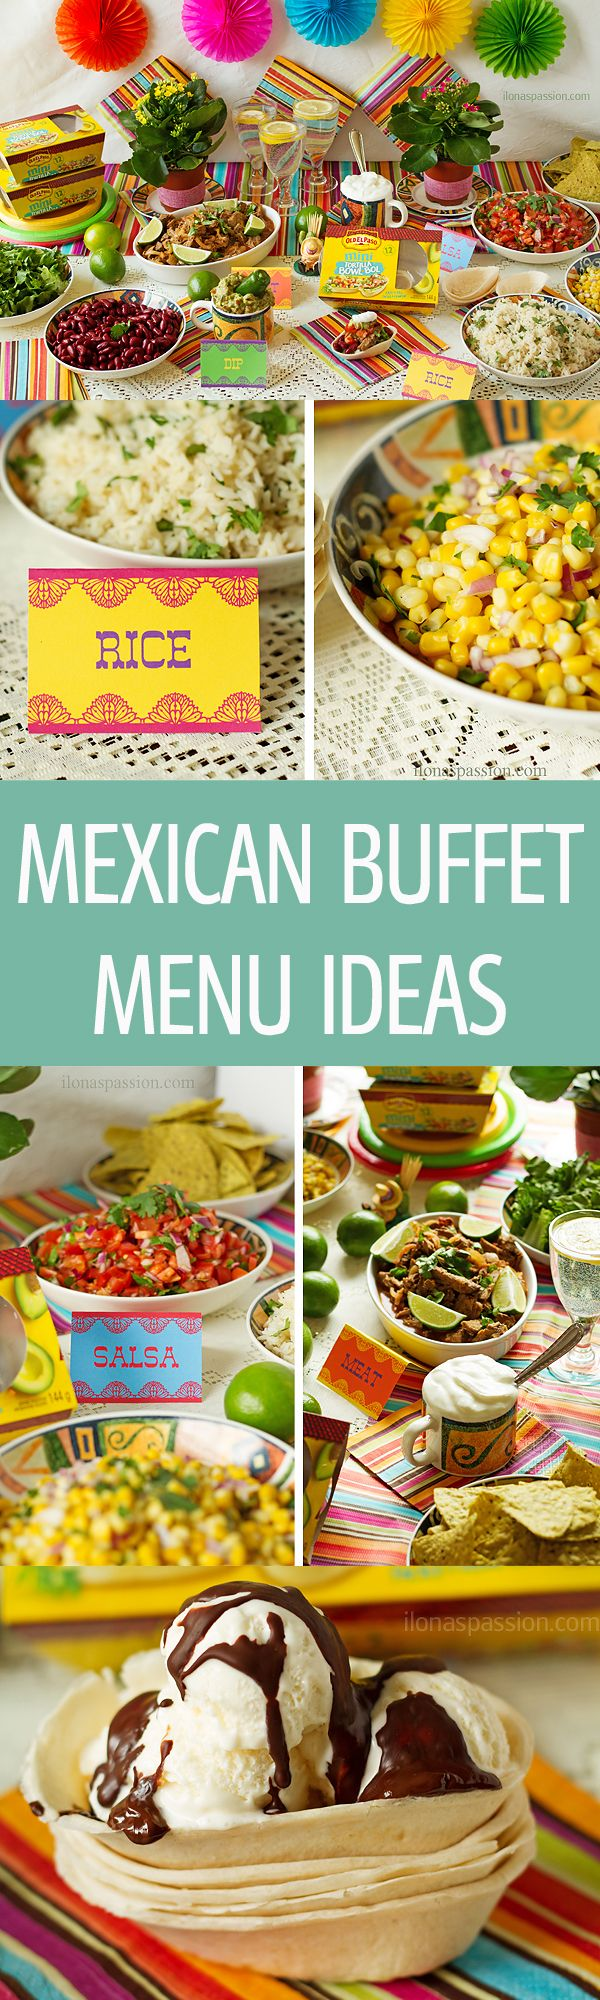 Mexican Buffet Menu Ideas Recipe Southwest Grubbin Mexican